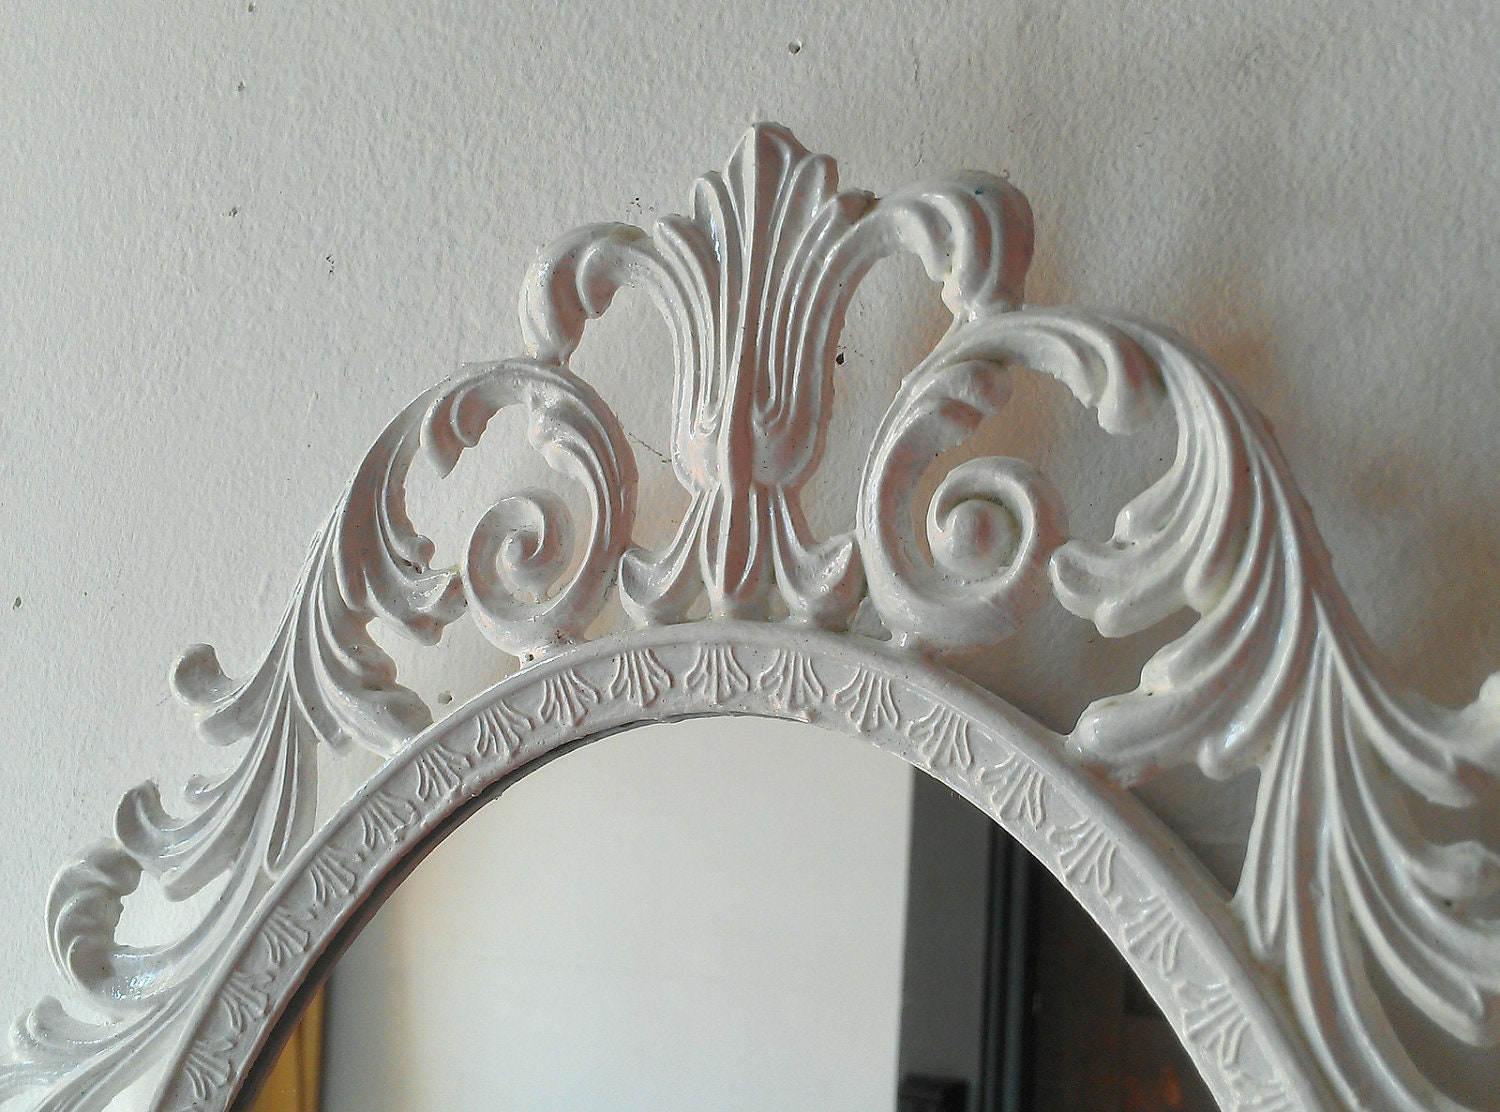 ornate white mirror decorative vintage oval wall mirrors french provincial country cottage - Wall Decor Mirrors